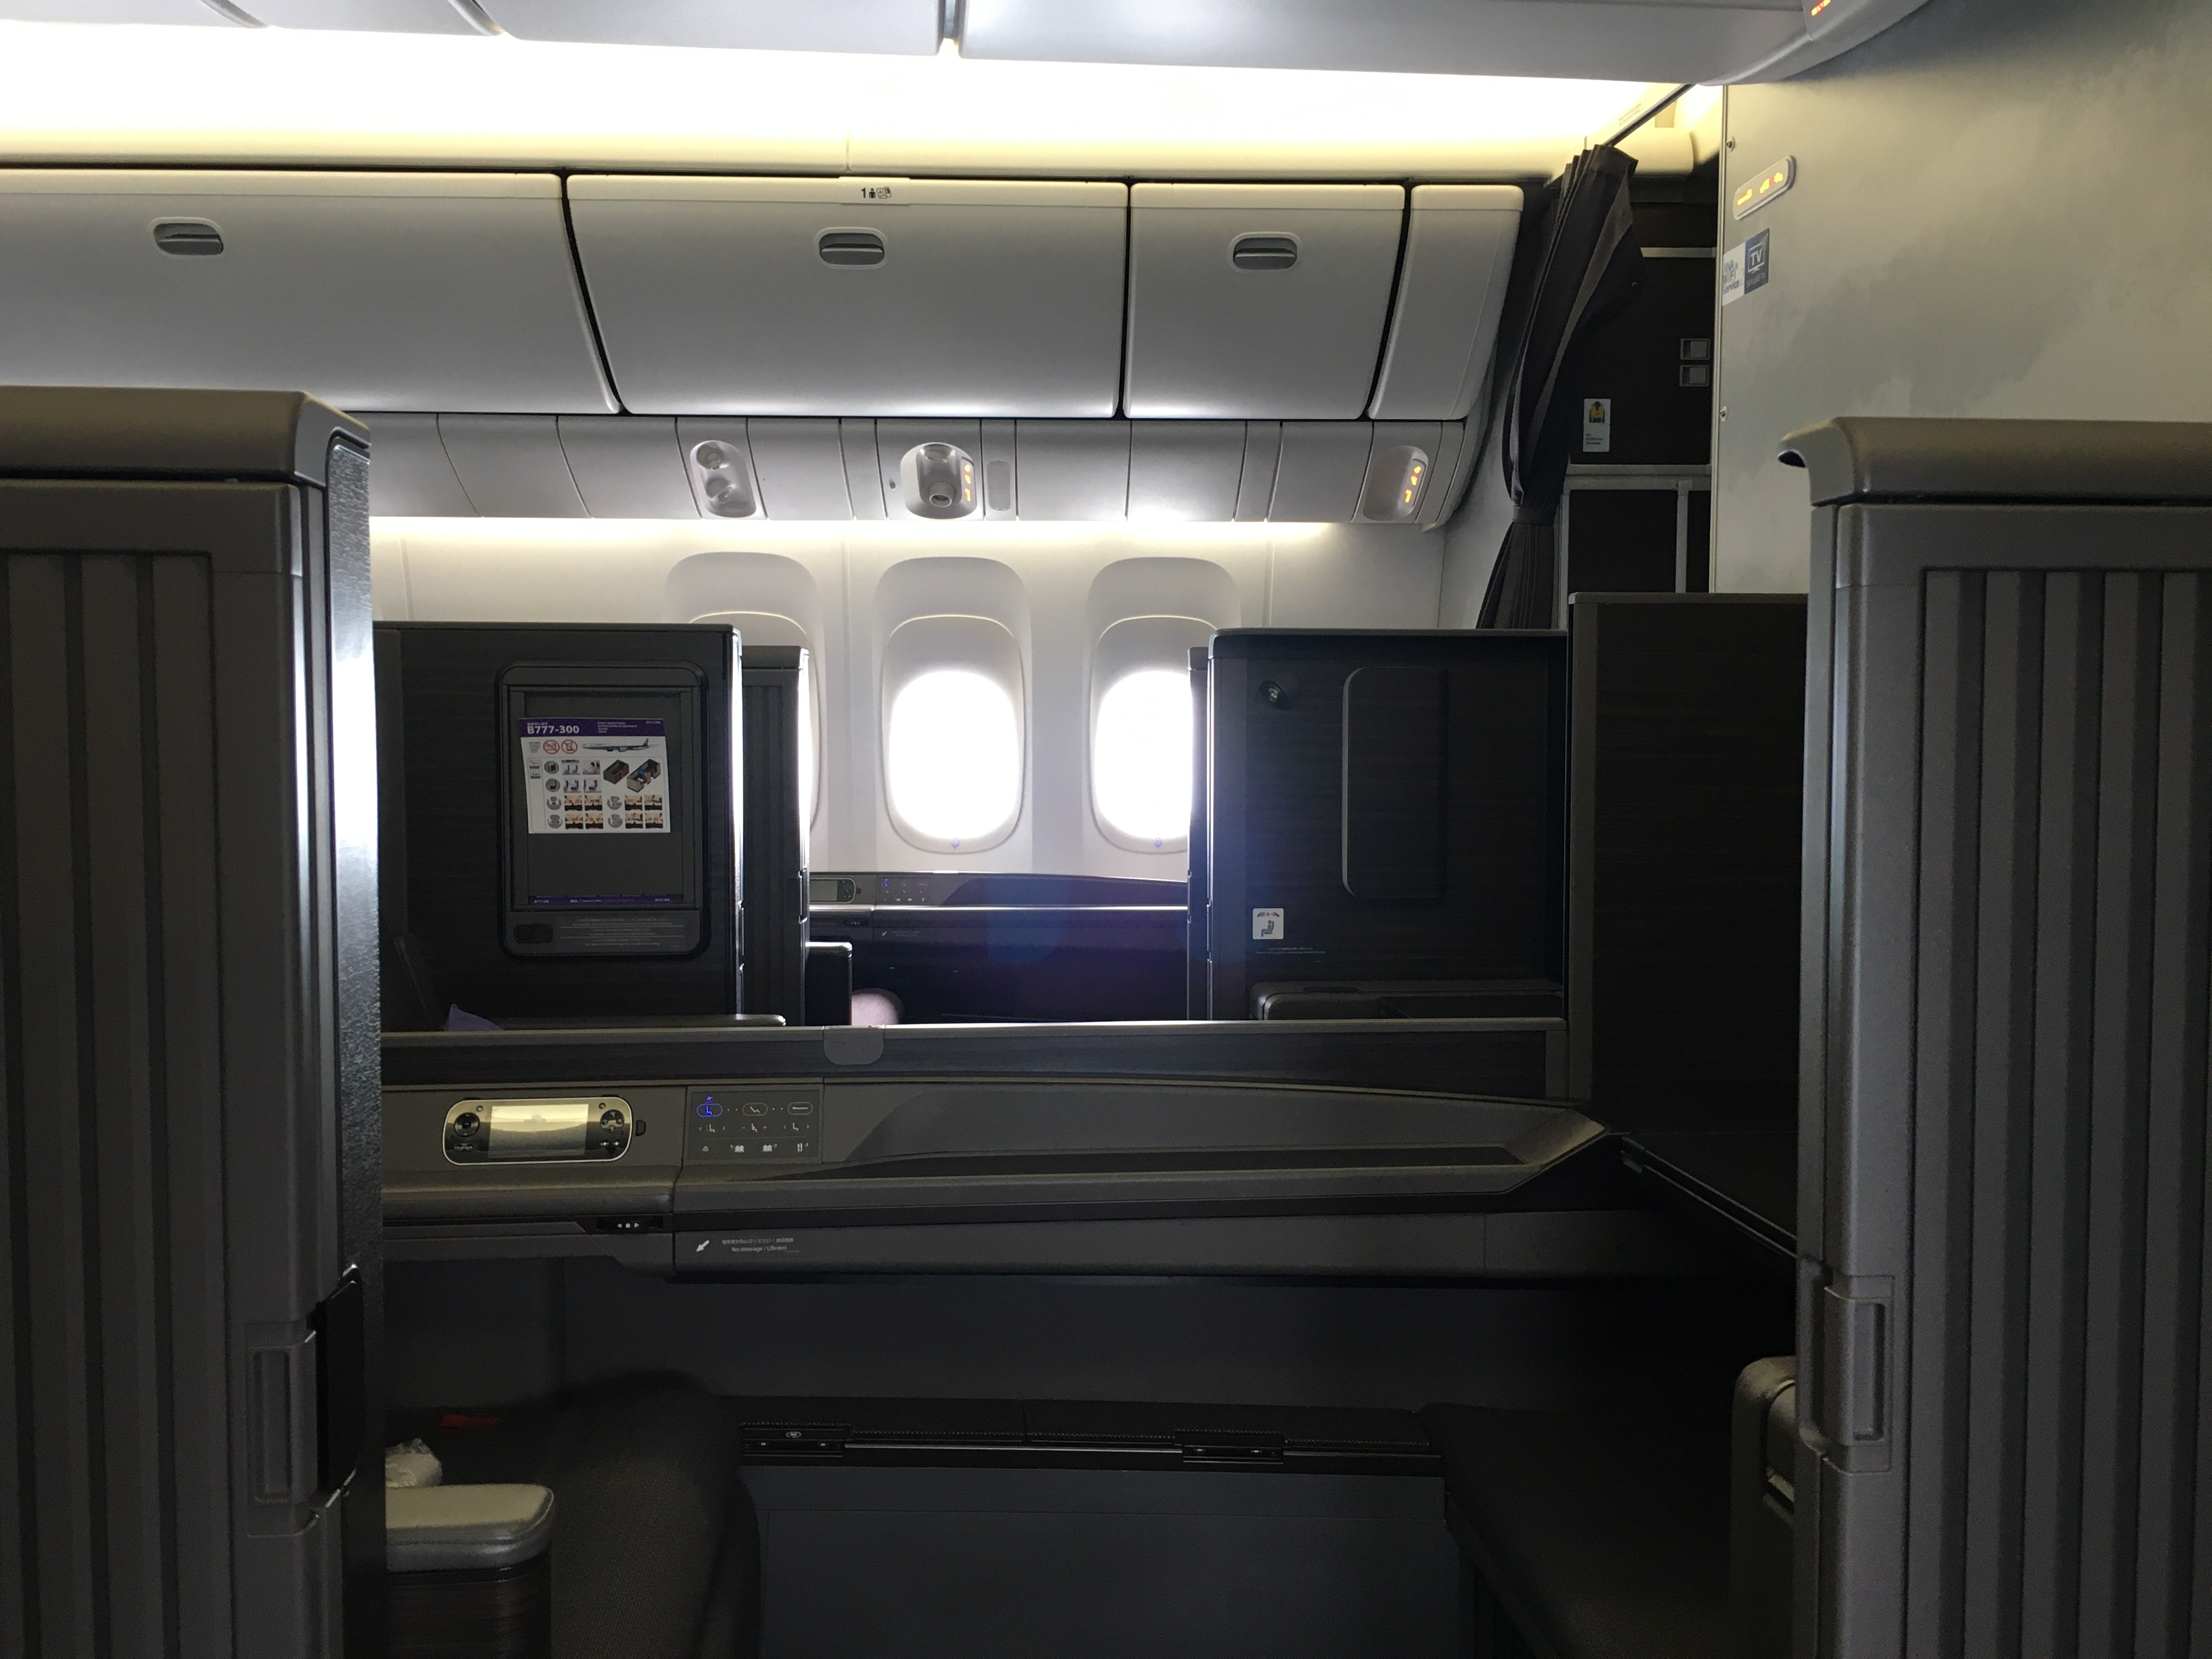 First Class Review :  ANA(NH) NH211 羽田(HND) – ロンドンヒースロー(LHR) 「The Suite」 機内食はヴィーガンミール